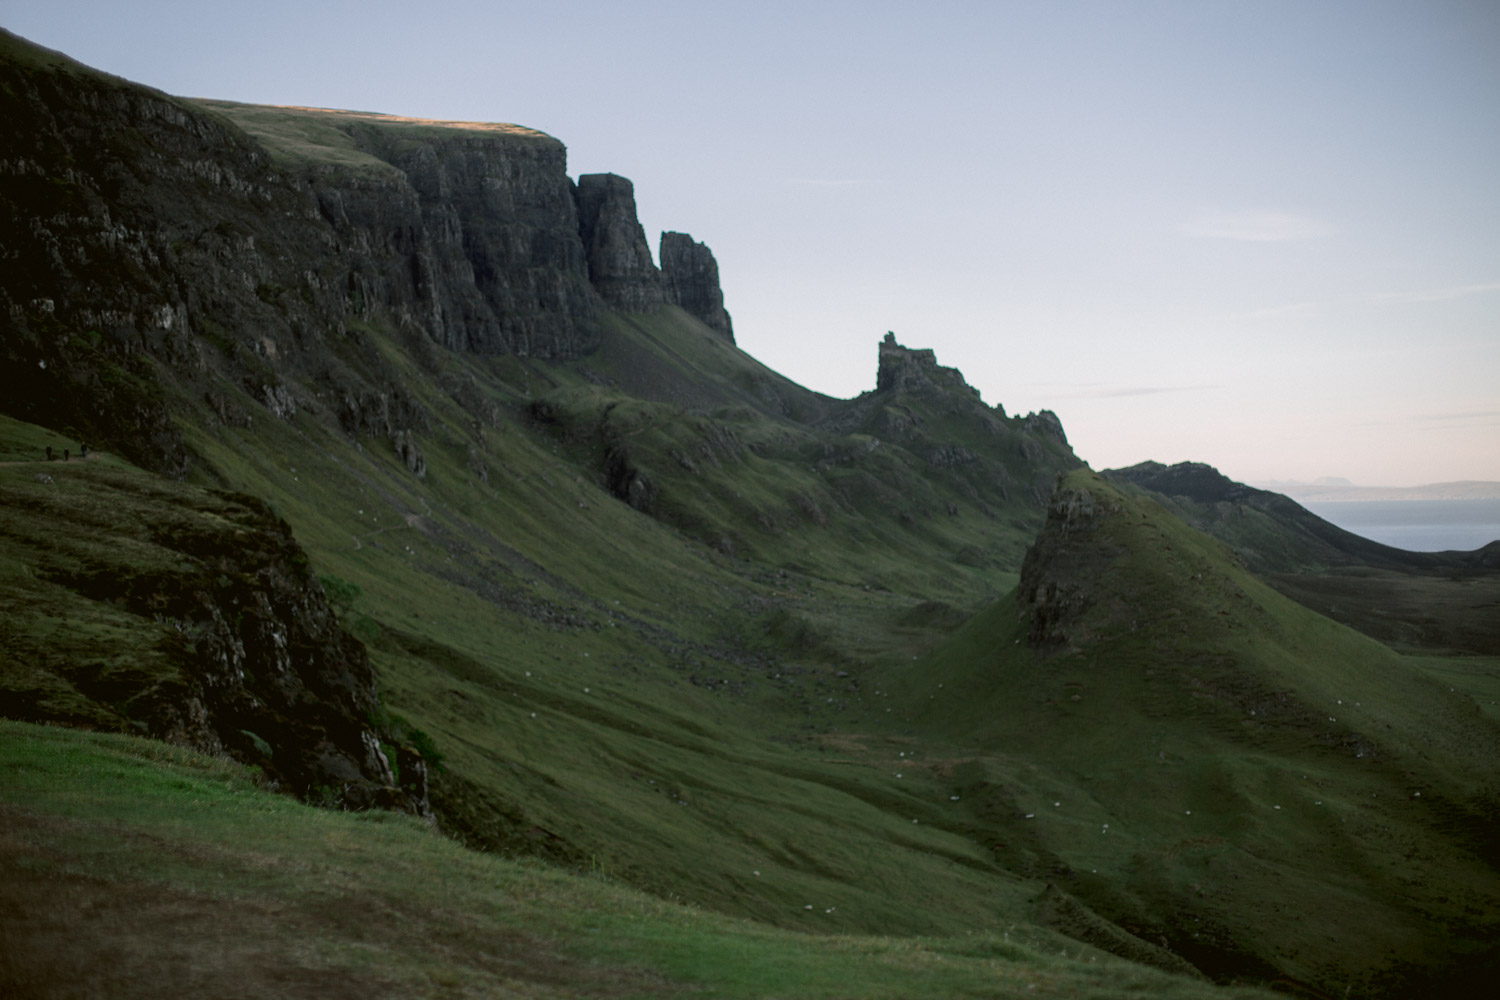 Quiraing in Isle of Skye, Scotland